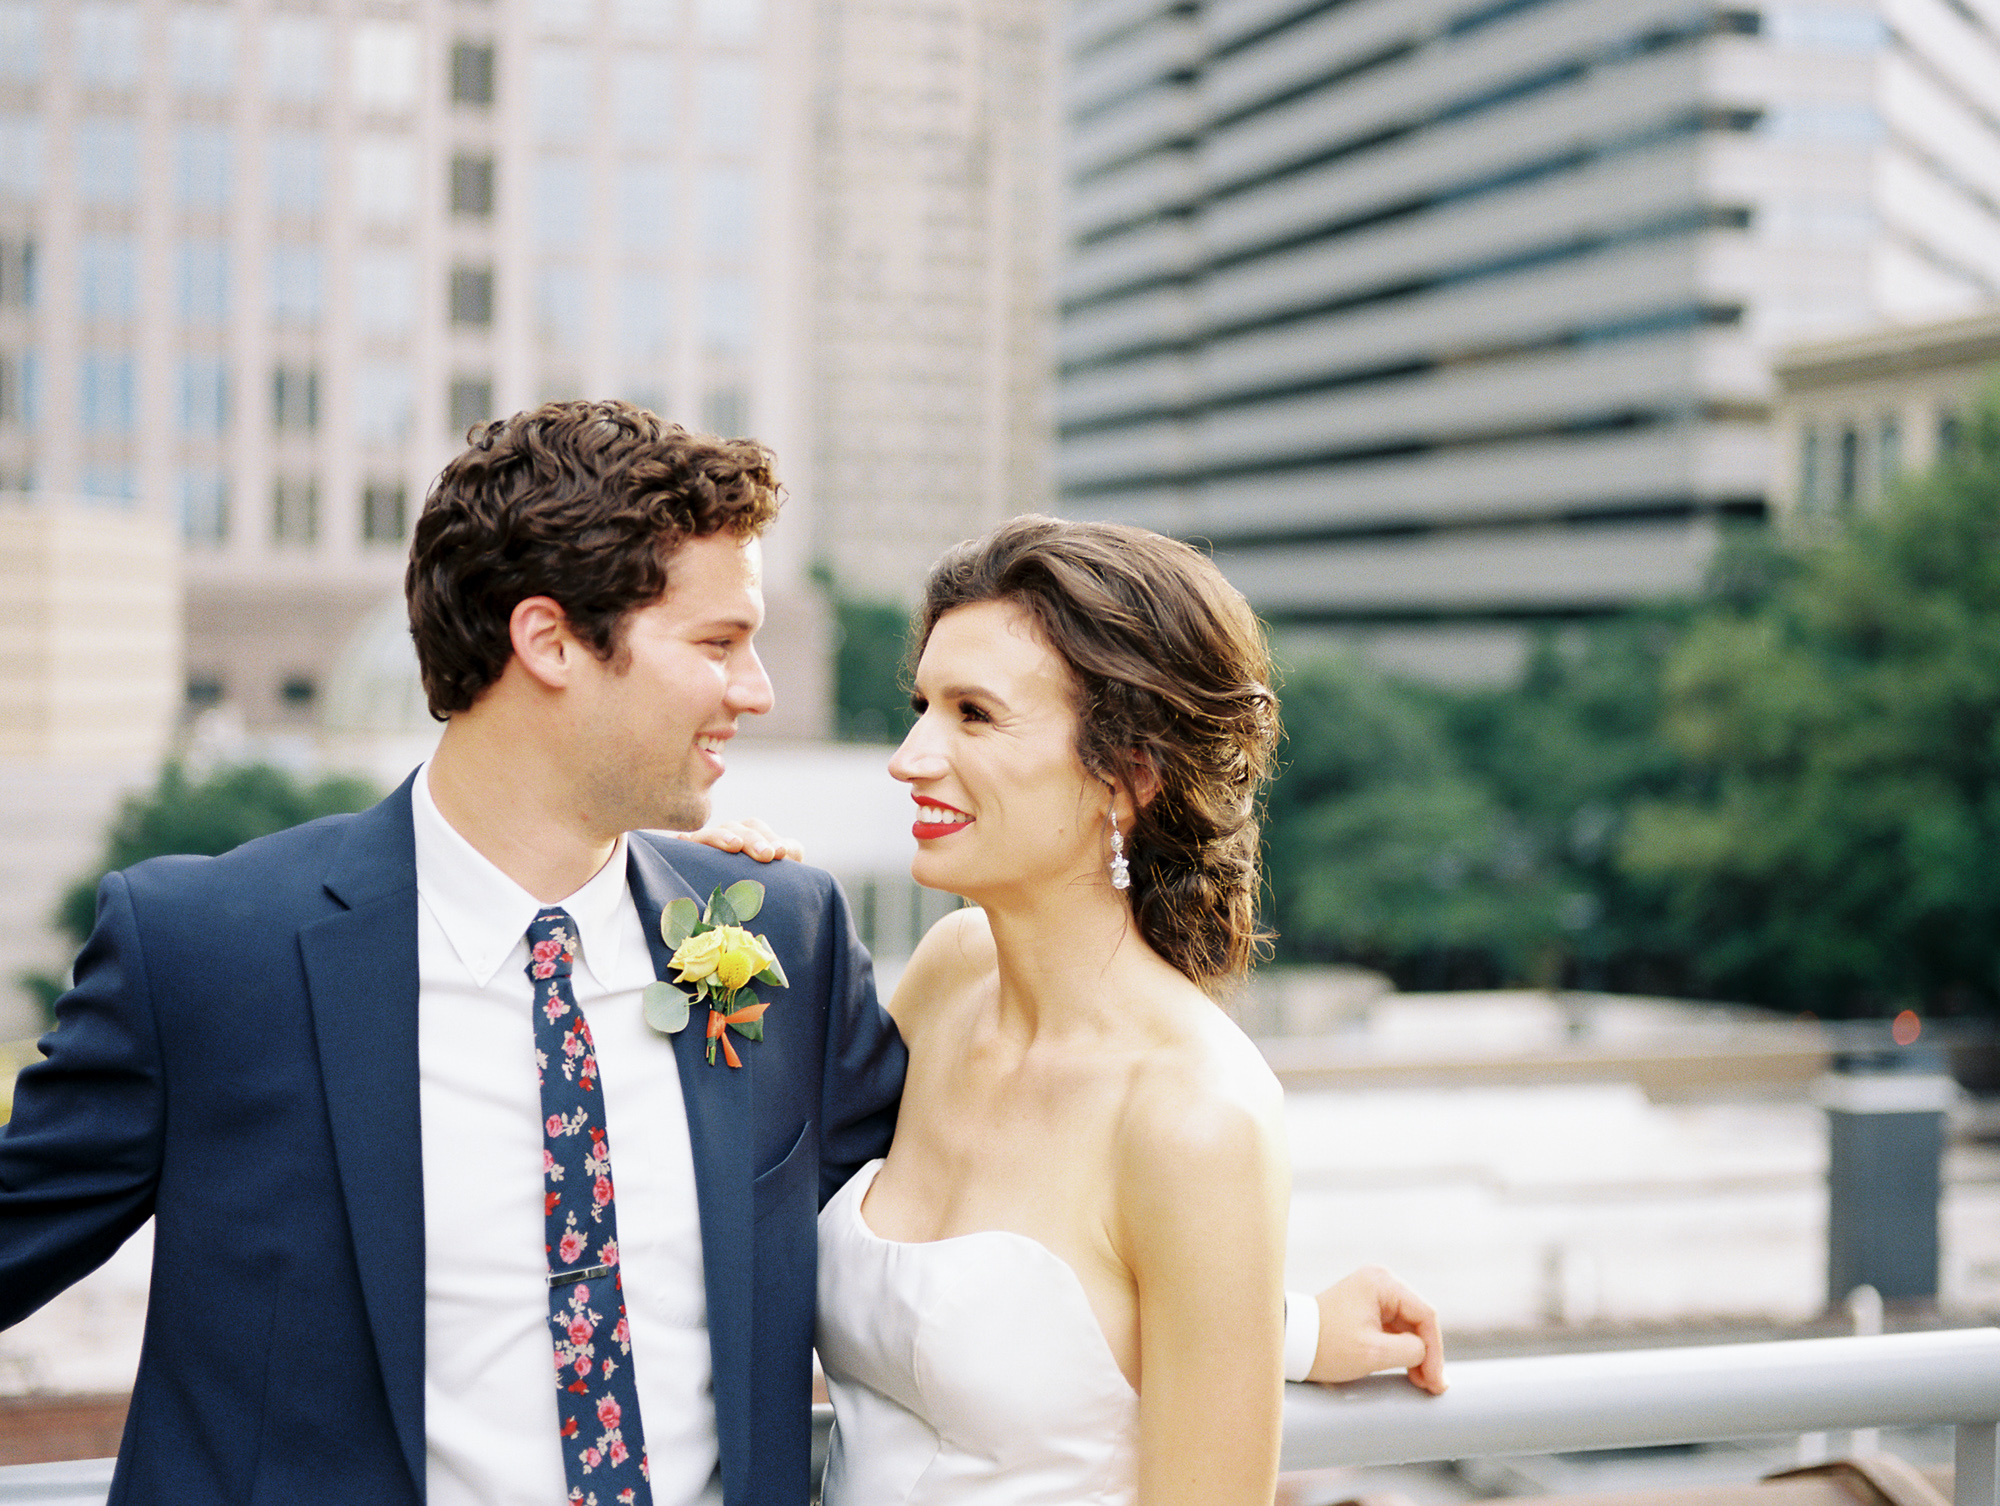 Amanda and Nat - Wed - Charlotte, NC Wedding Photographer - © Kaitlyn Stoddard Photography-5.jpg